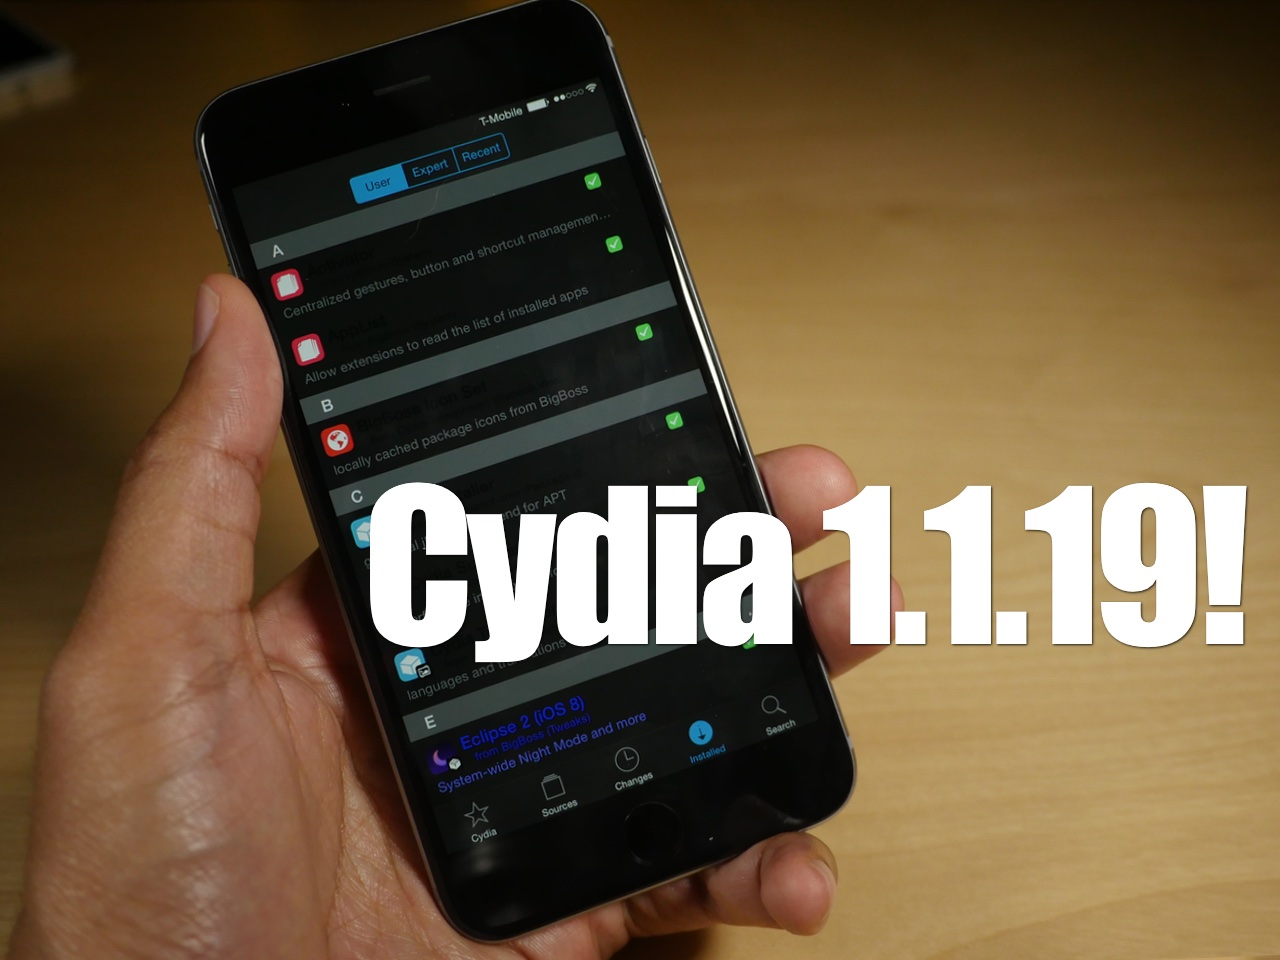 Cydia 1.1.19 Eclipse 2